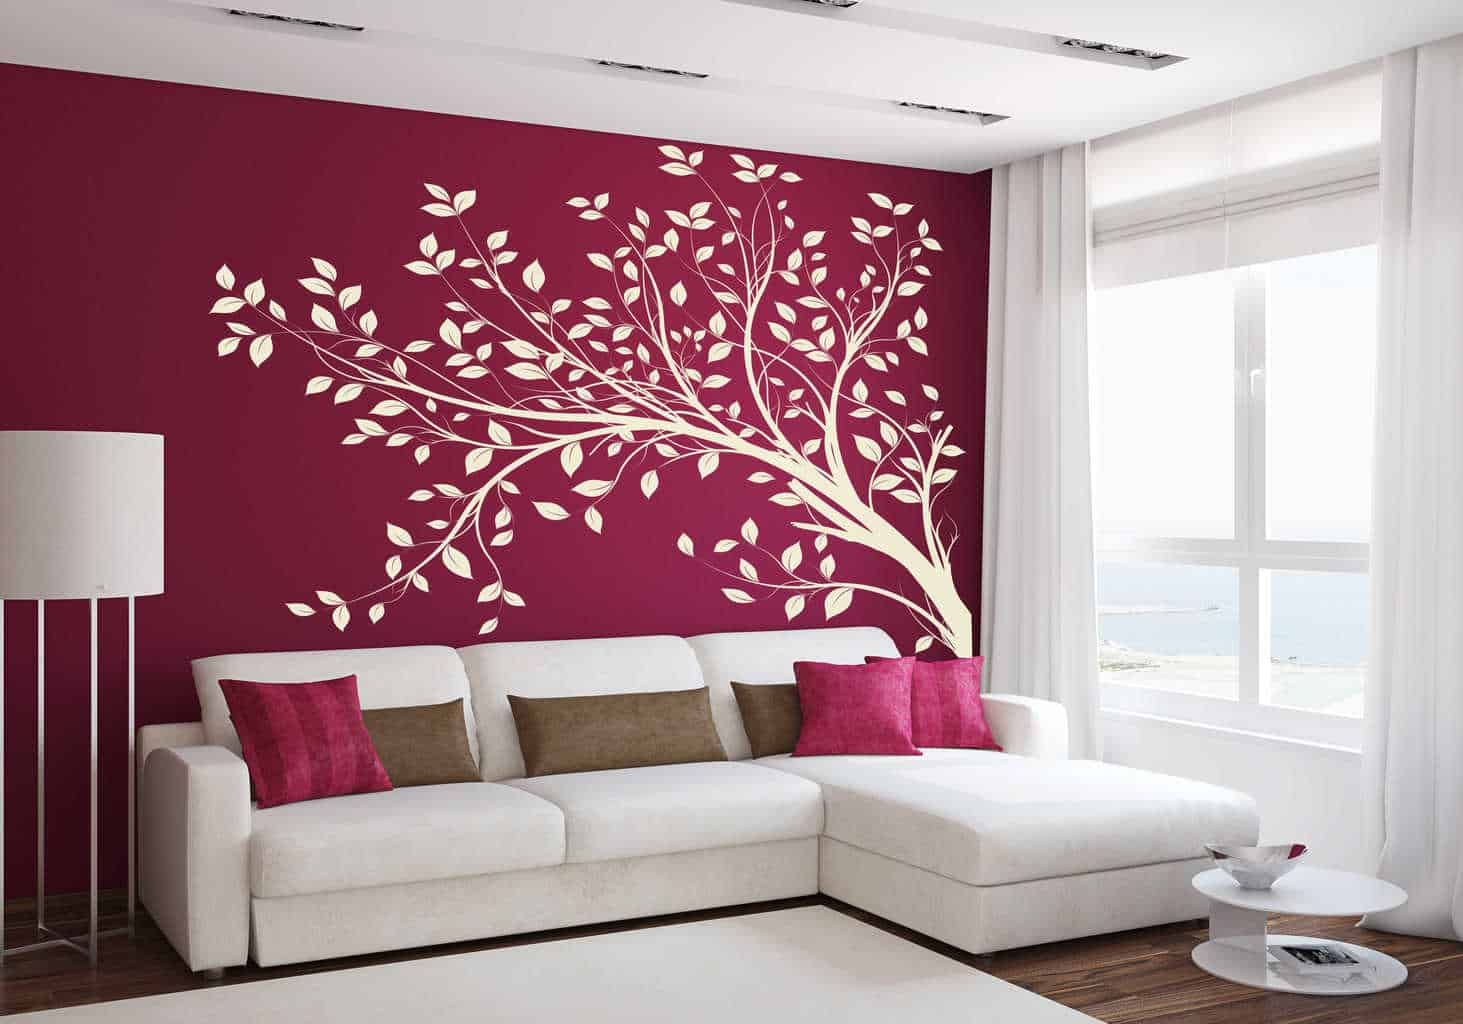 Decorative Wall Stickers Wall Decals Ireland Express Yourself Decals Designer